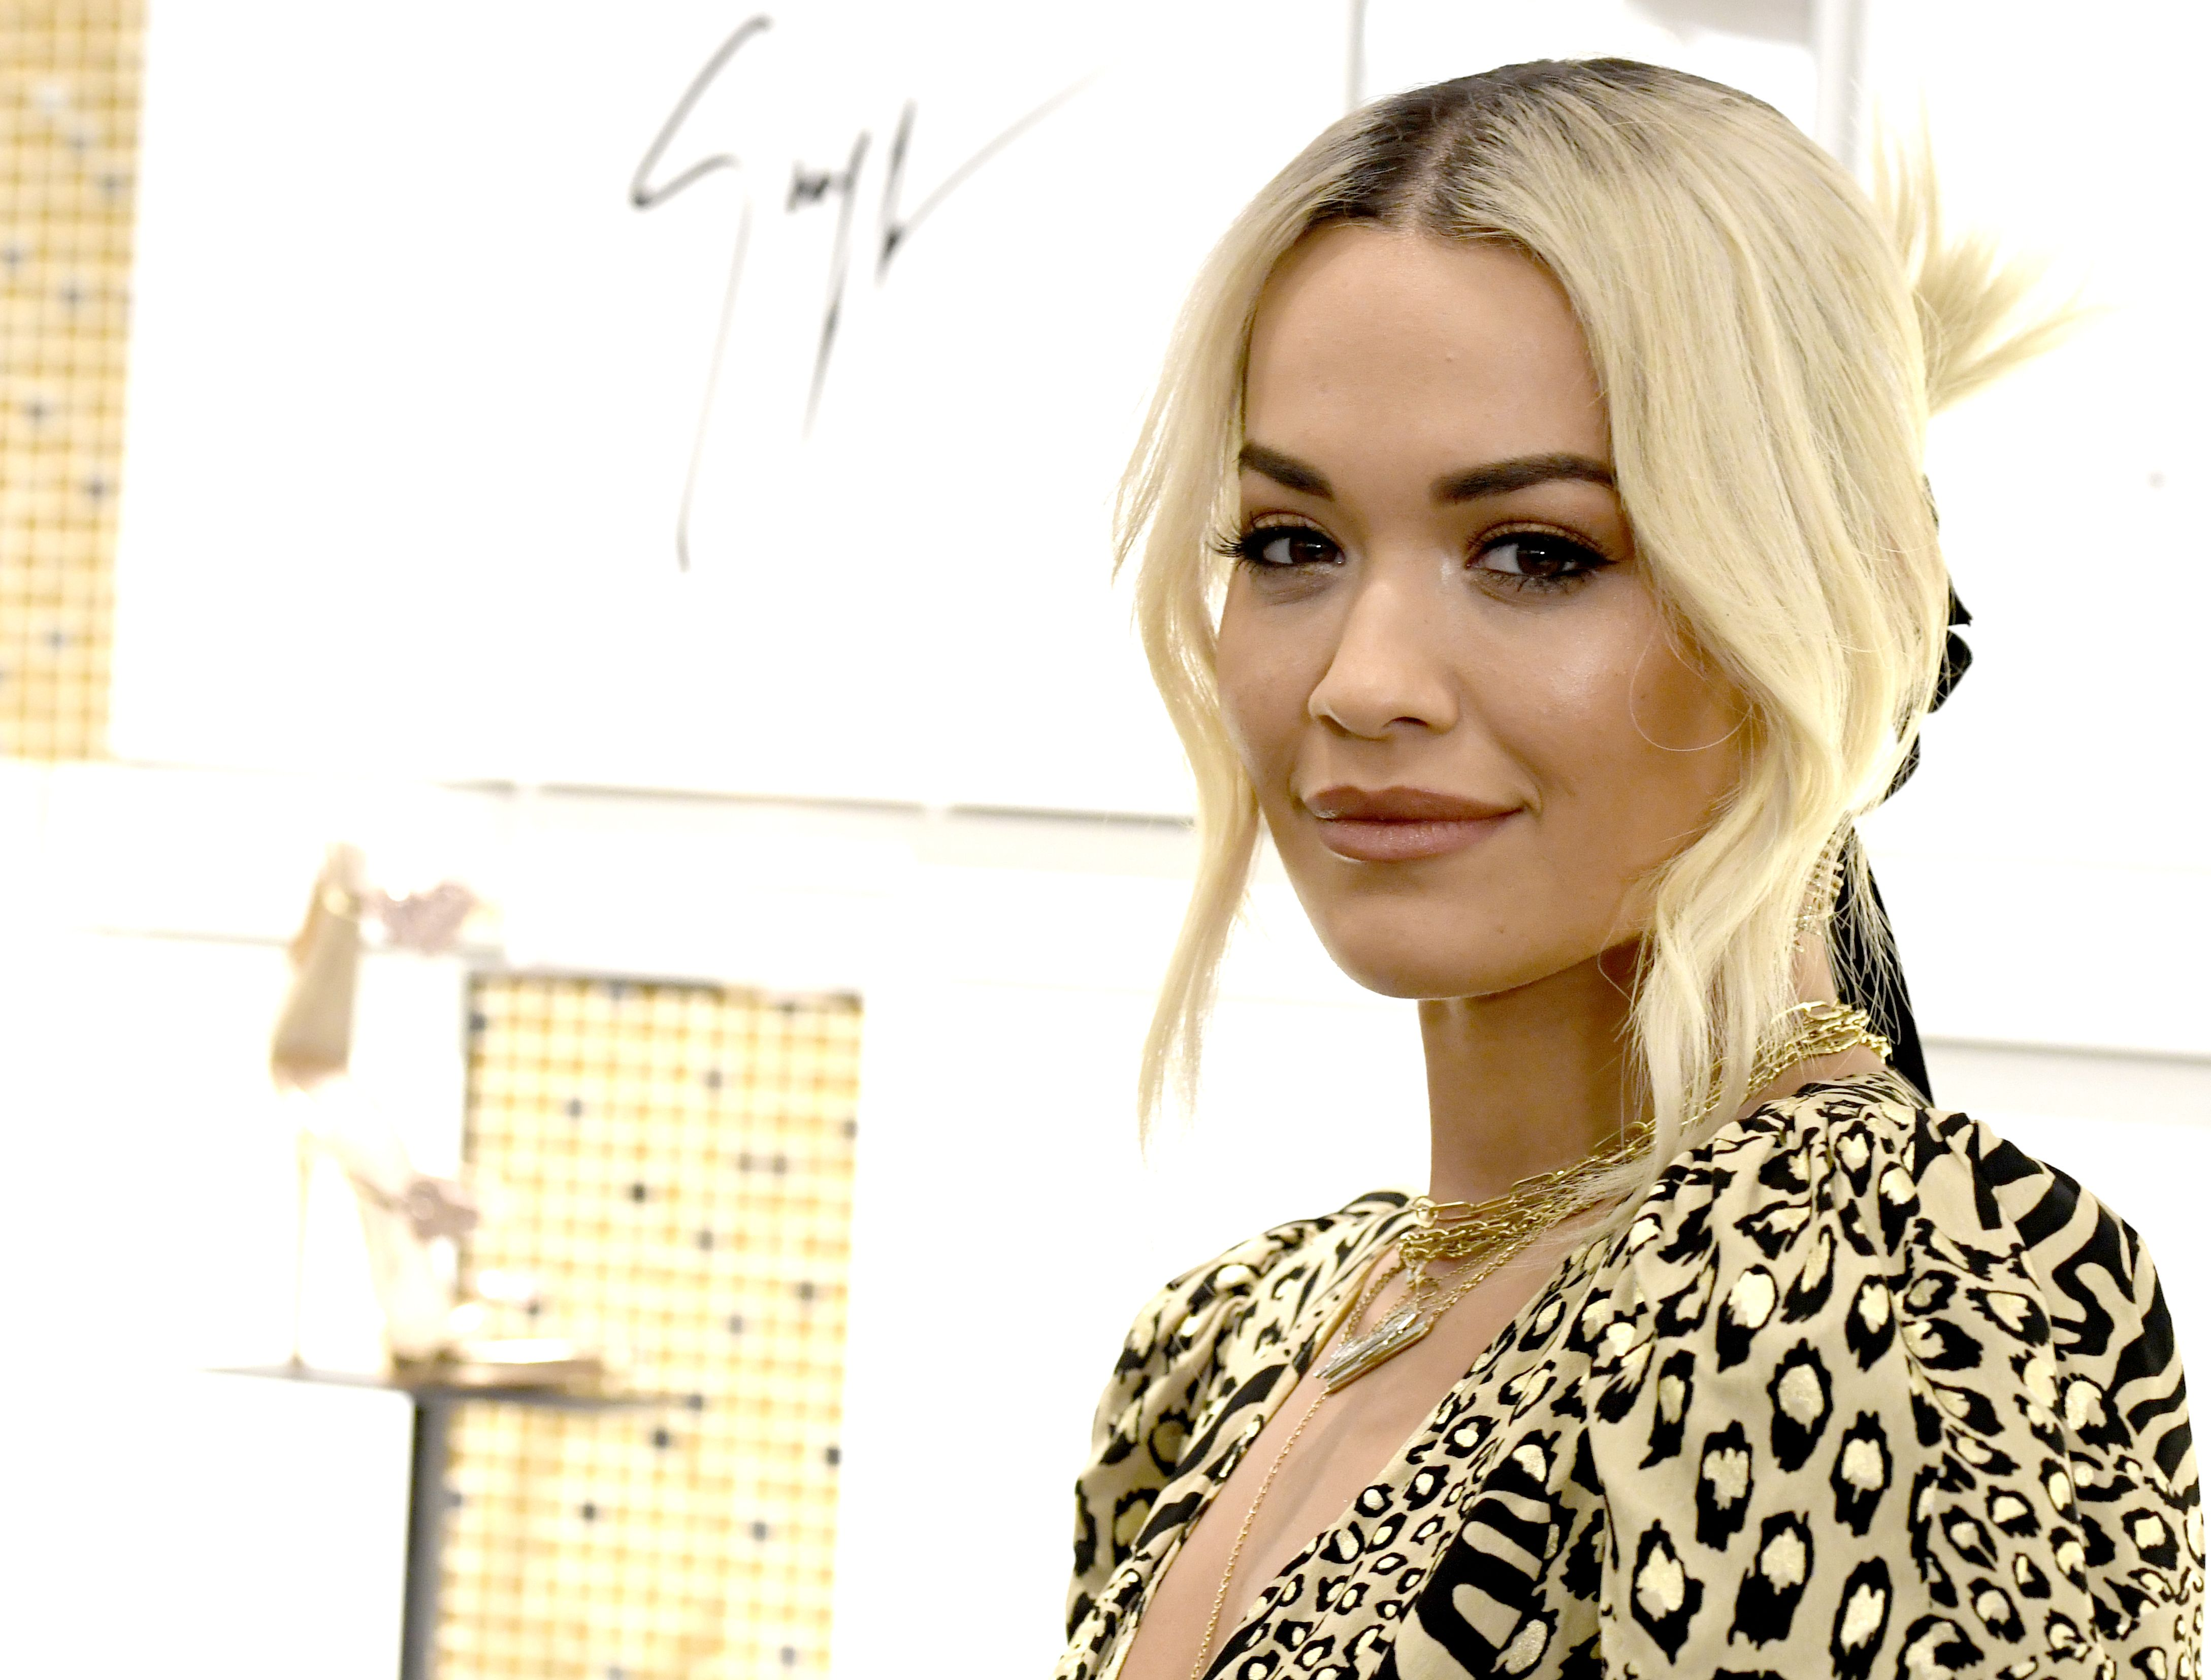 Holy Sh*t: Rita Ora Has a Mullet Now and Somehow Made It Look Amazing